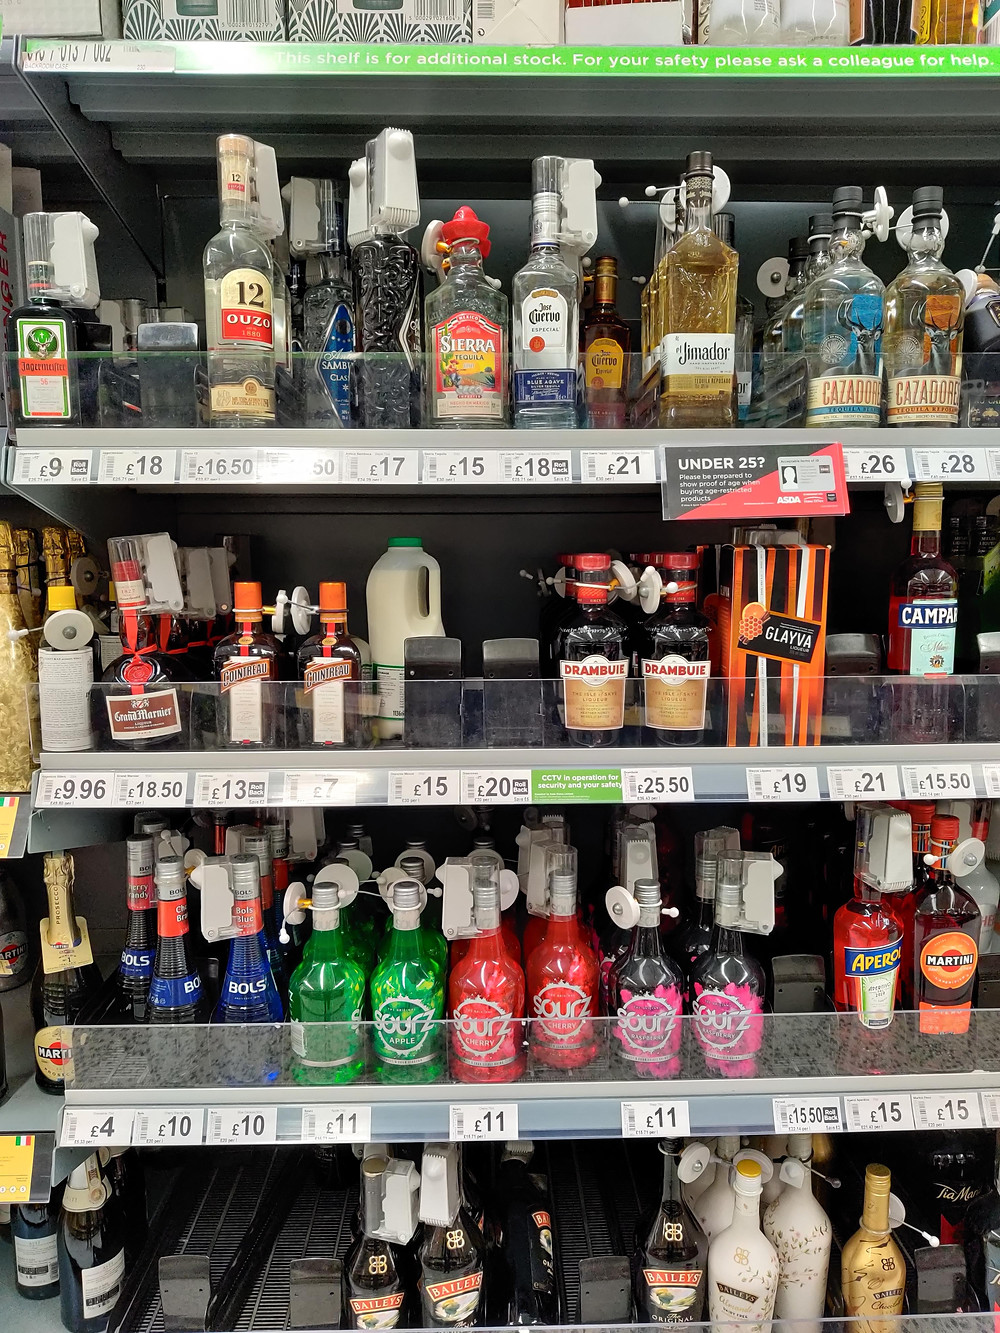 Milk in the spirits section